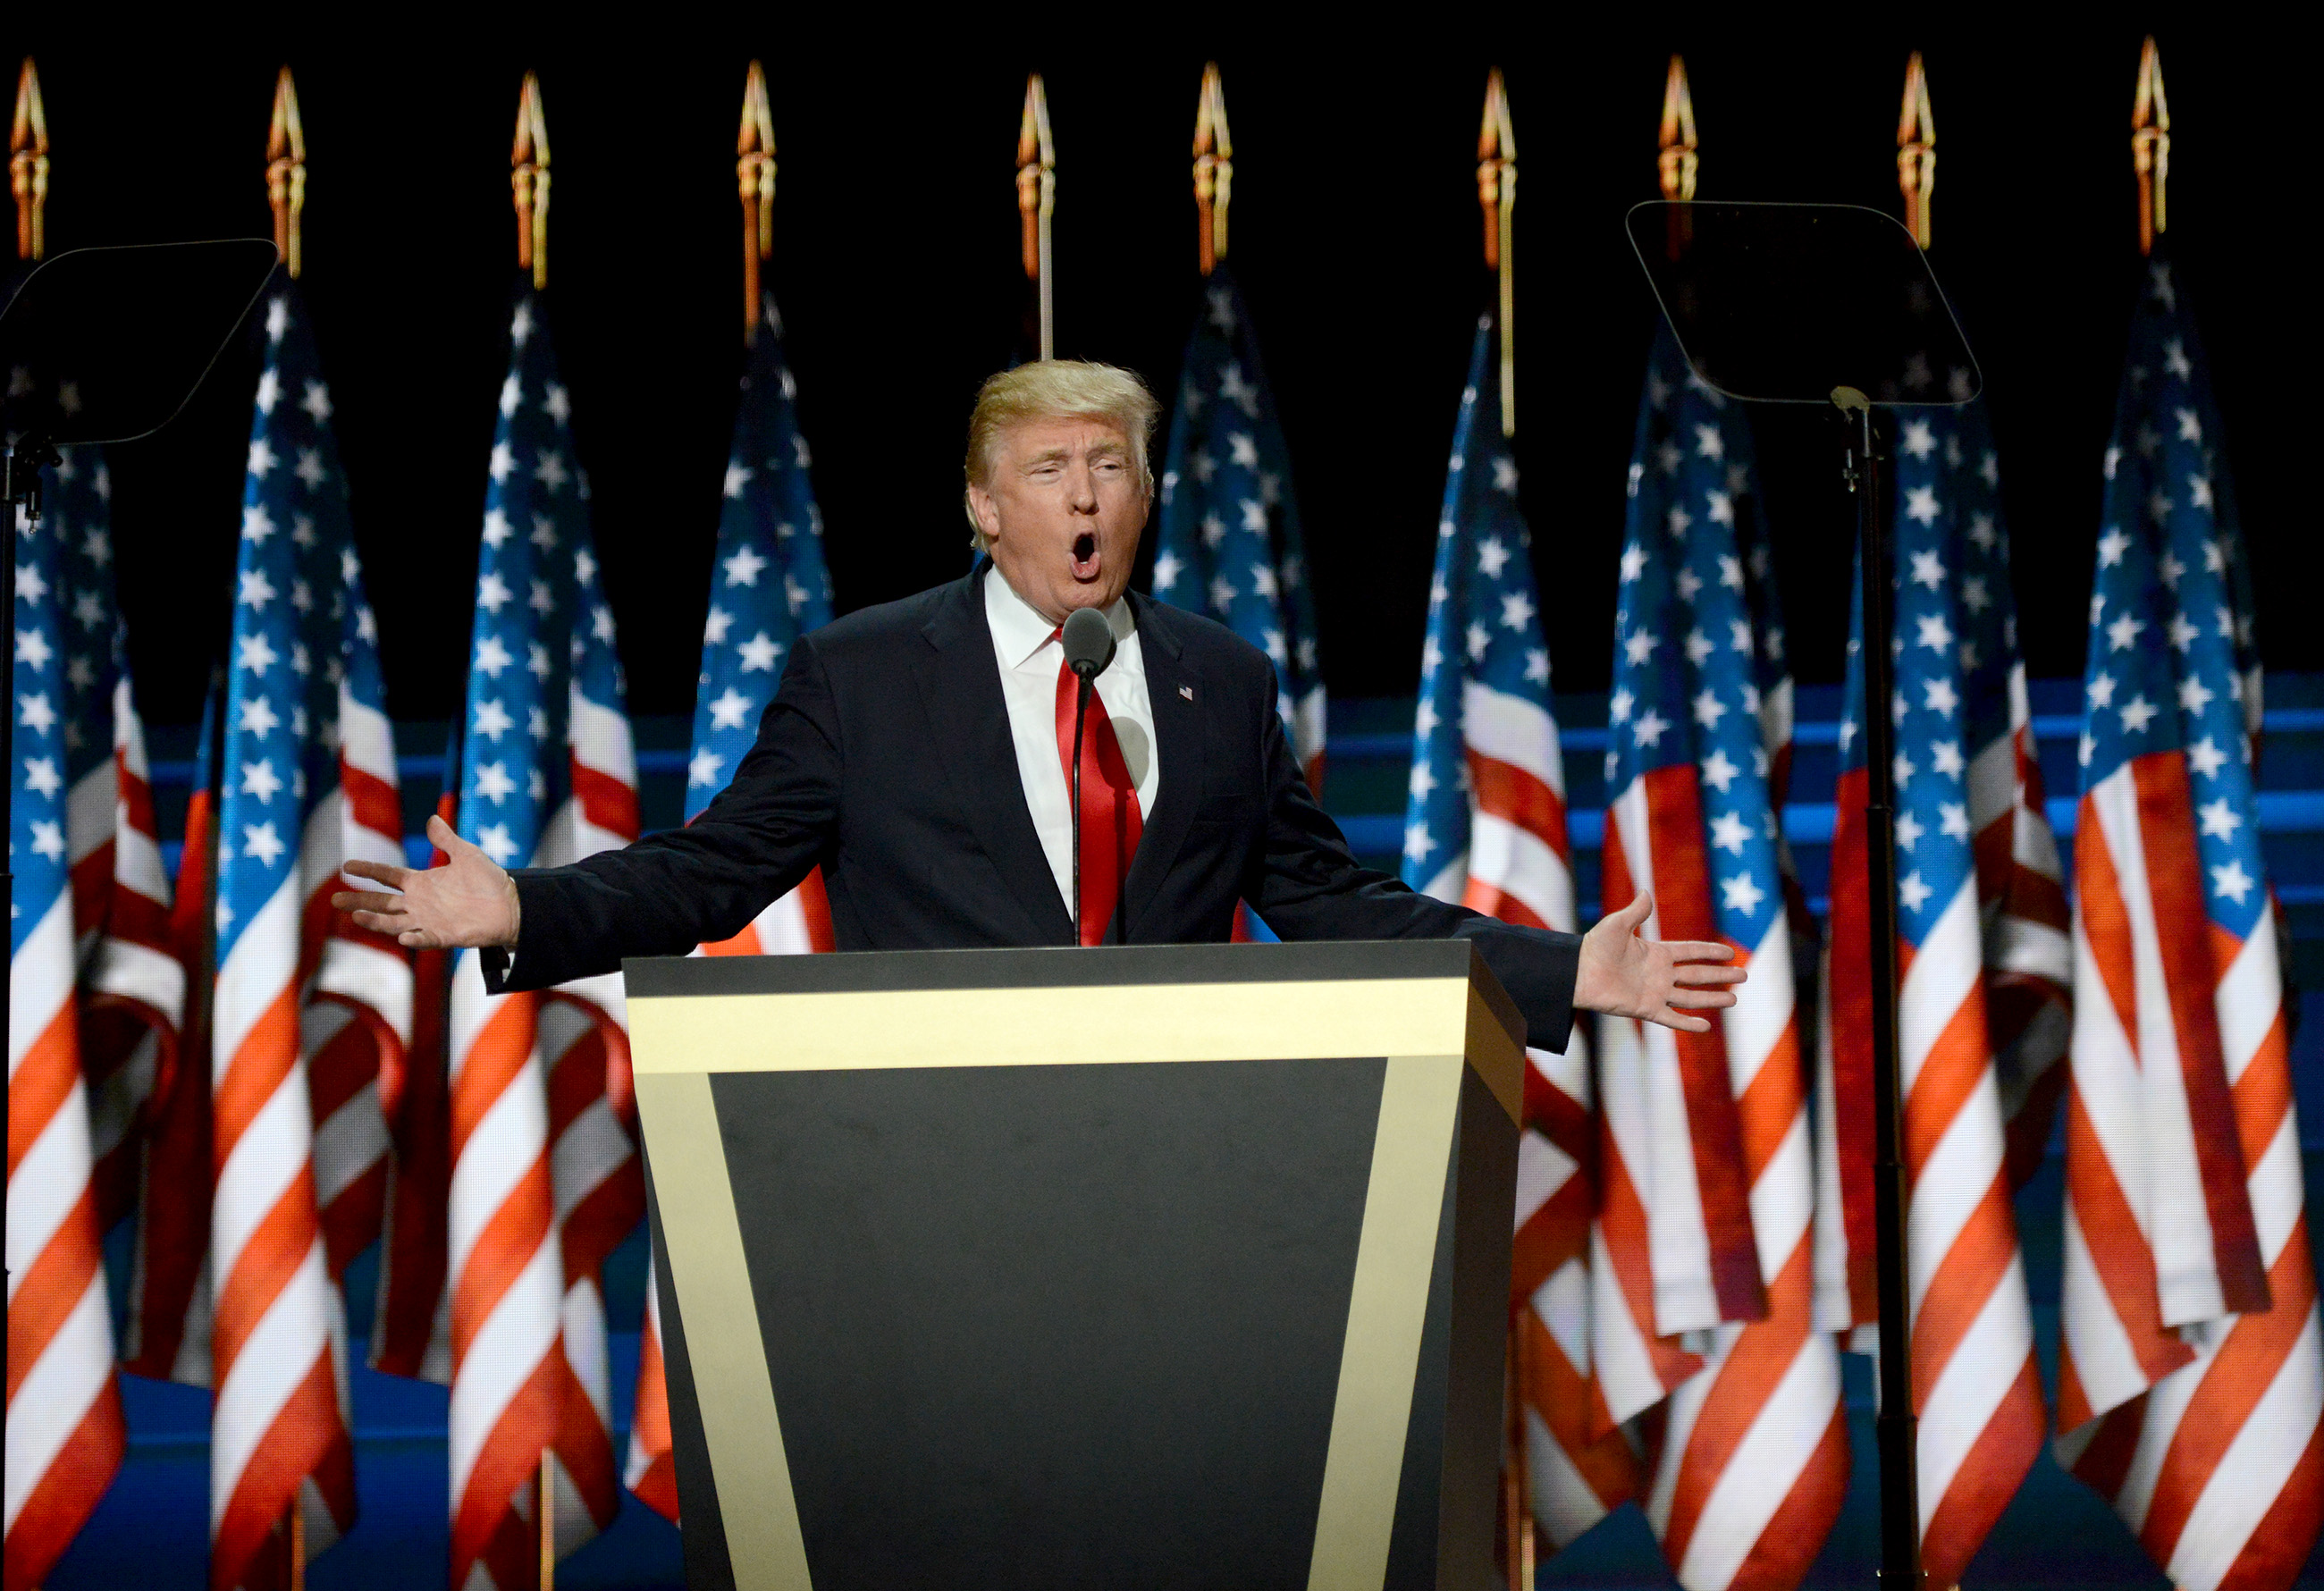 20160722MWHtrumpLocal08-2 Republican presidential nominee Donald Trump speaks to close out the Republican National Convention at Quicken Loans Arena in Cleveland.